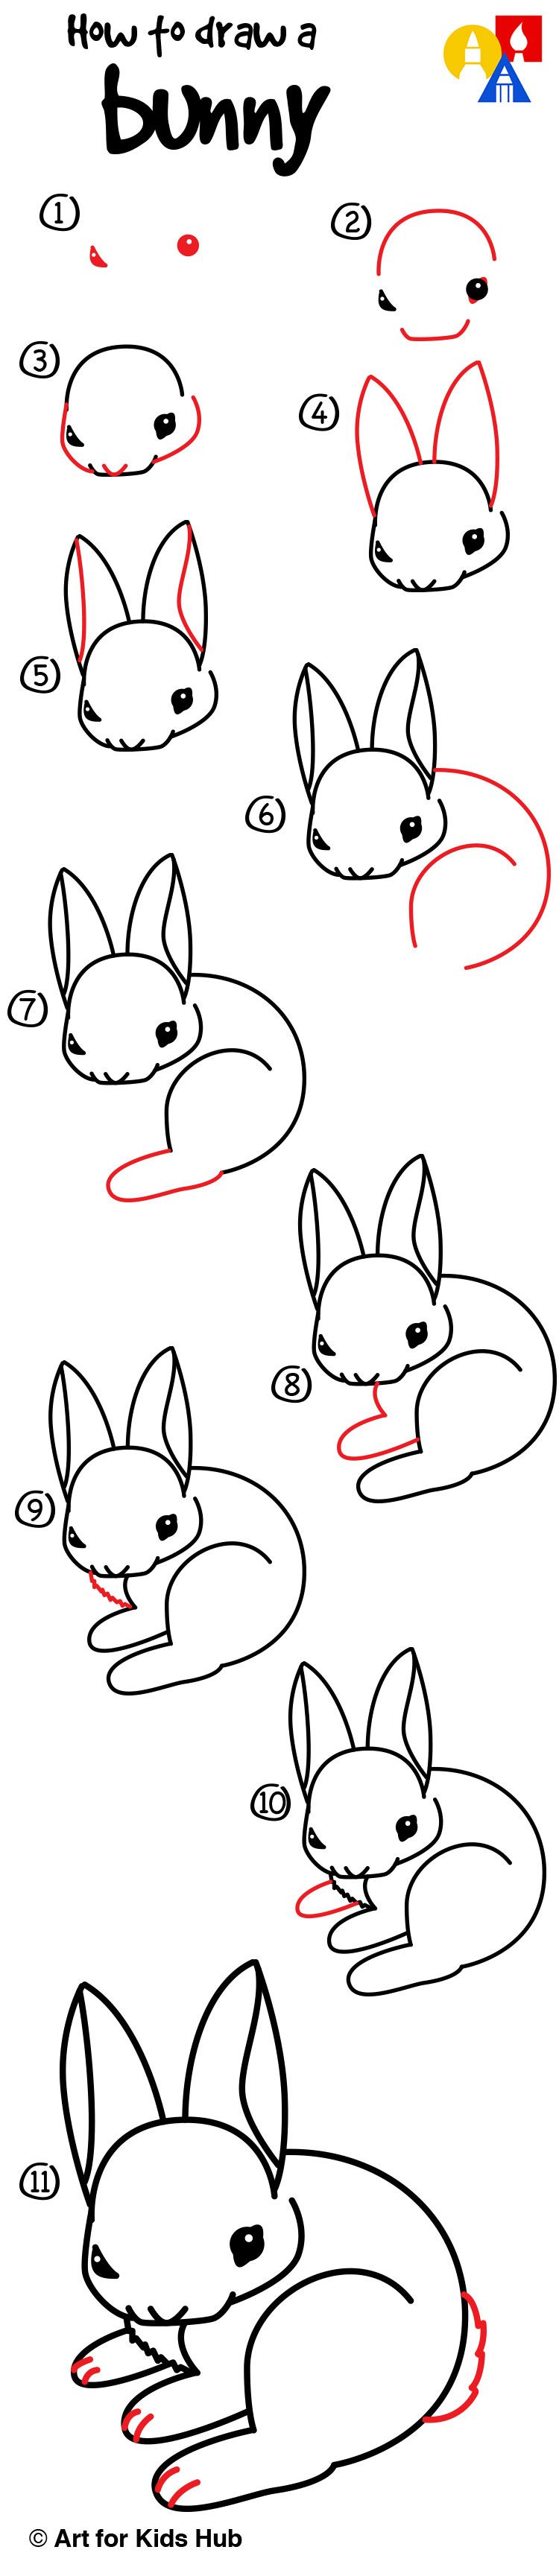 How To Draw A Realistic Bunny  Art For Kids Hub